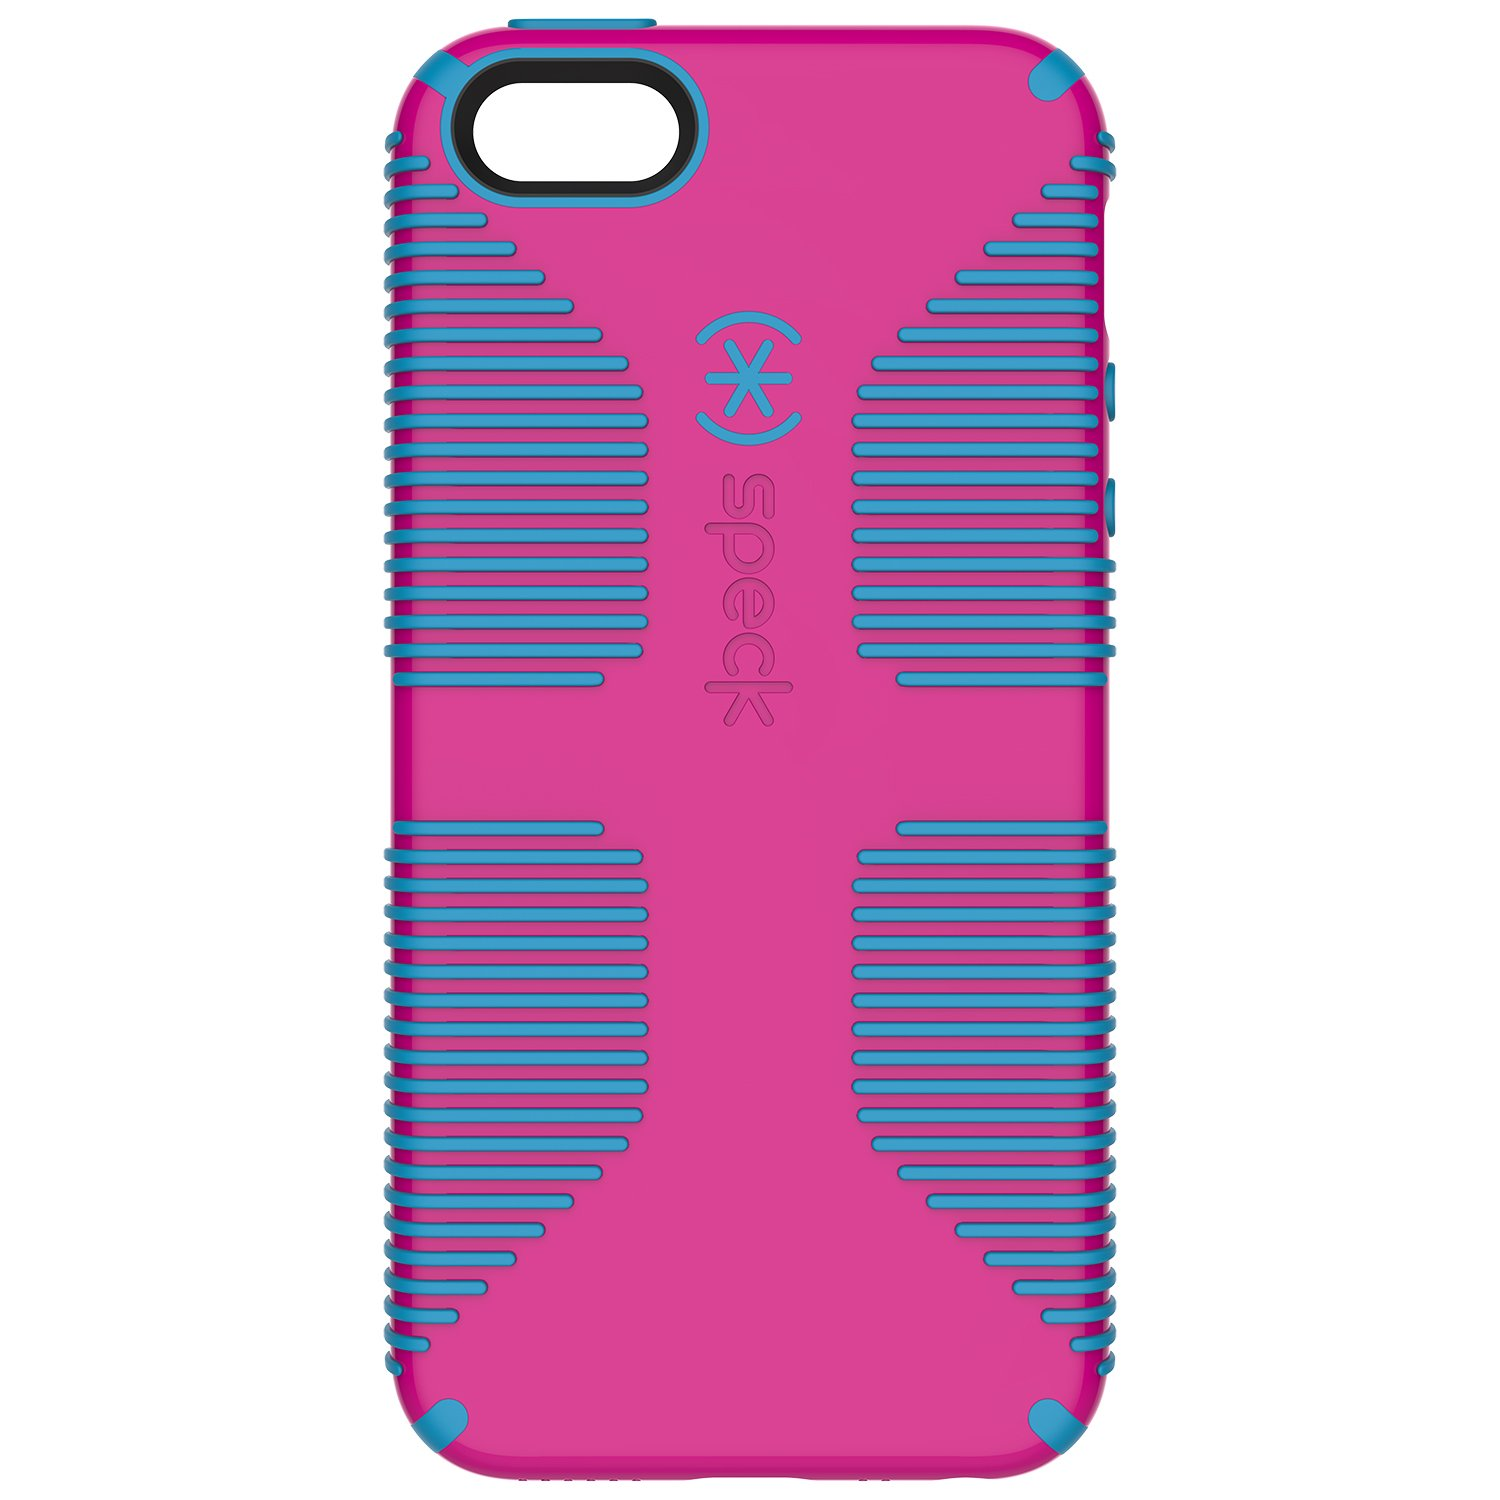 Speck Products CandyShell Grip Cell Phone Case for iPhone SE/5/5S - Retail Packaging - Lipstick Pink/Jay Blue